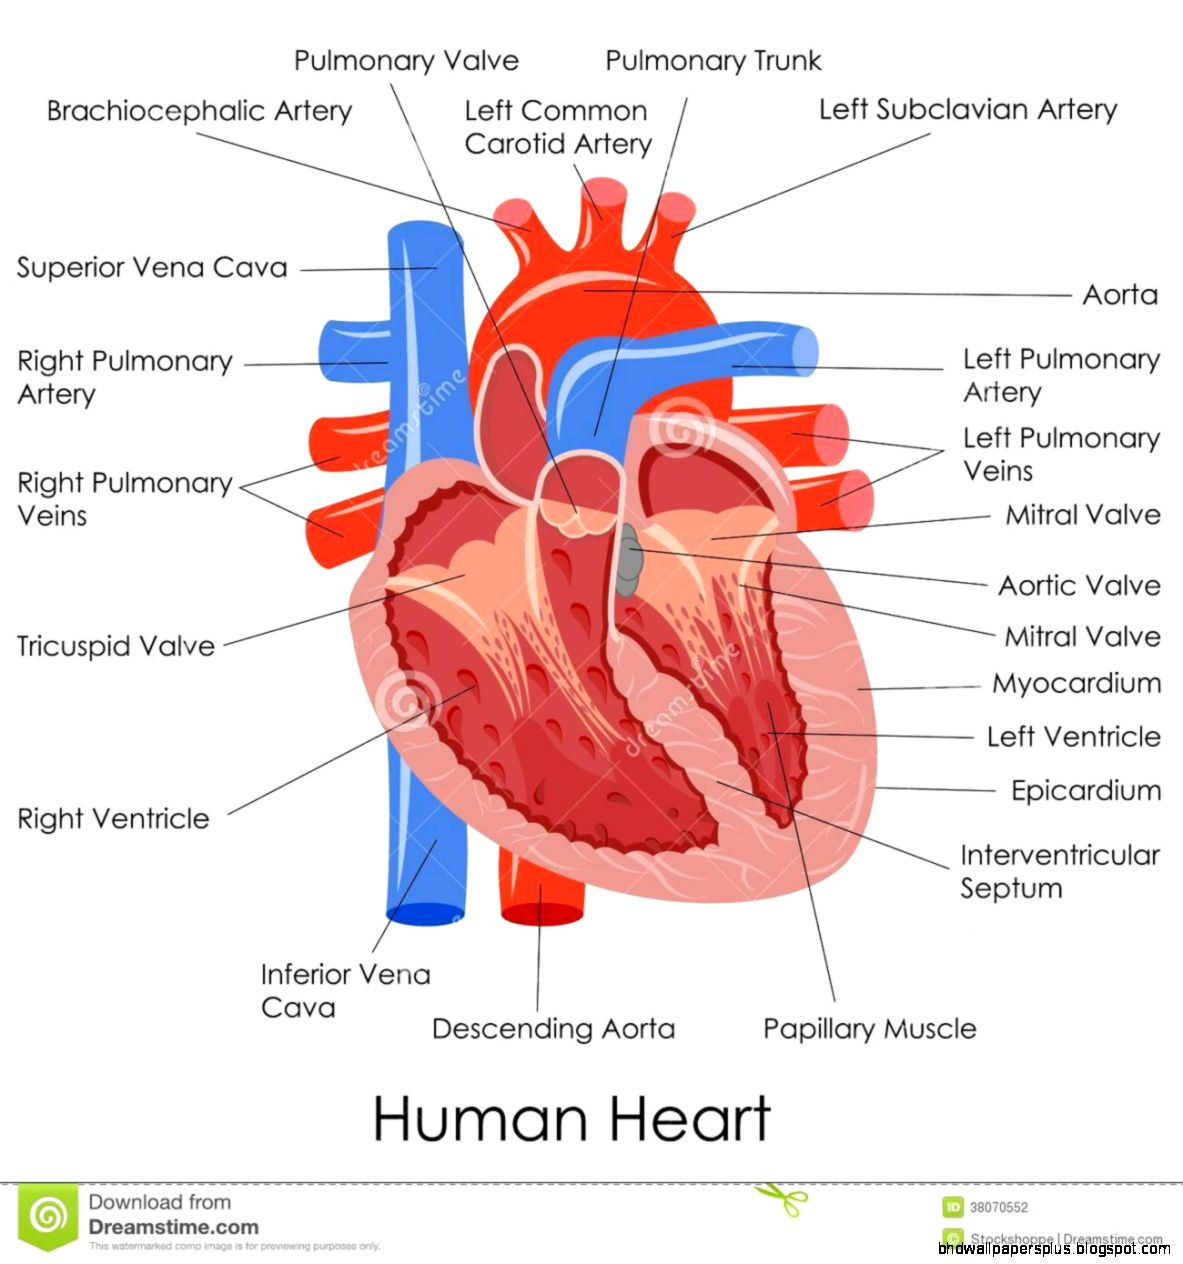 Human Heart – Structure, Layers, facts, Functions & Basic Anatomy